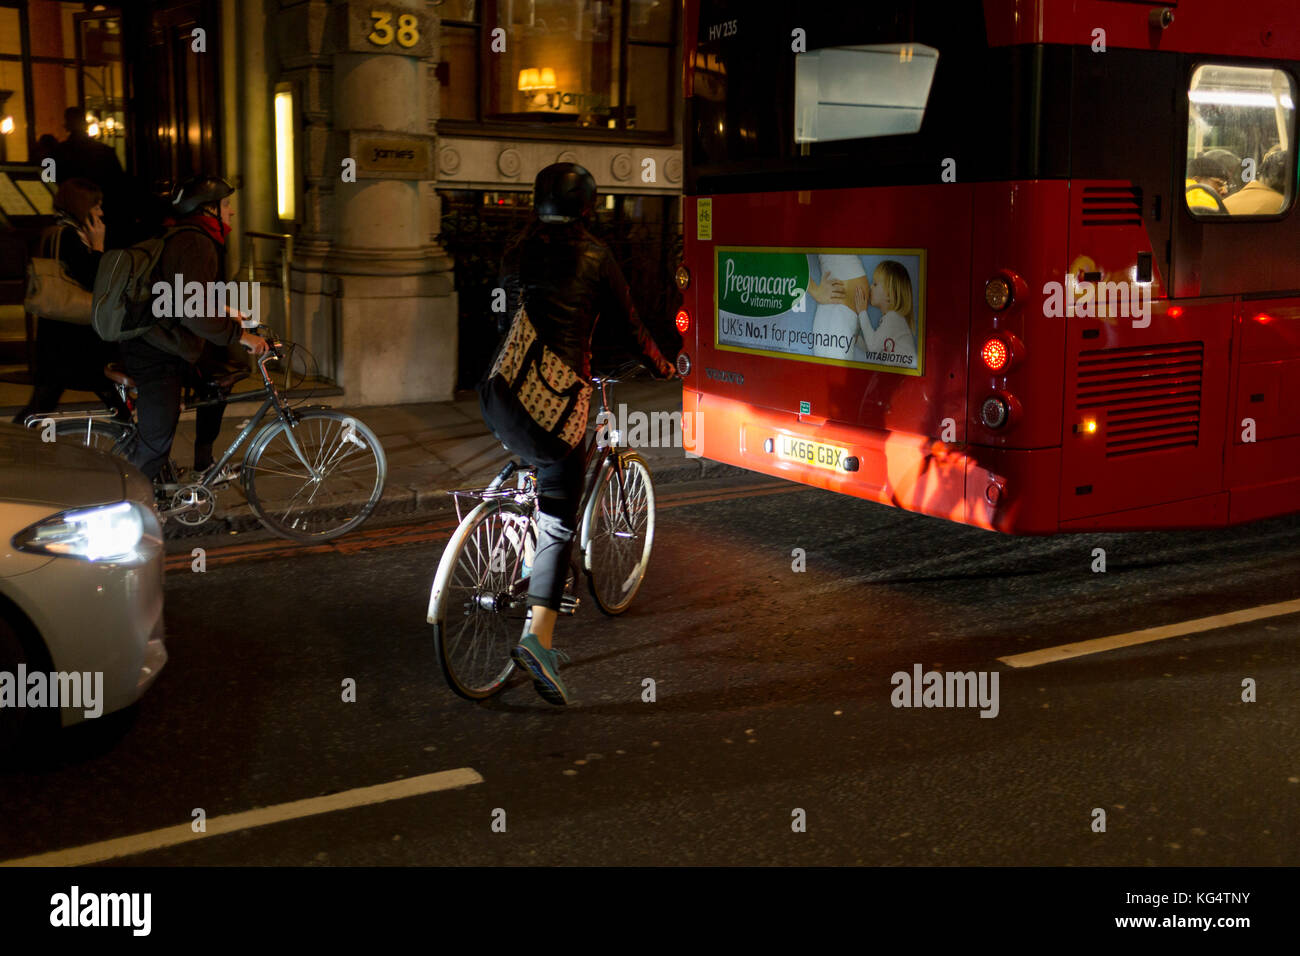 a-waiting-cyclist-is-illuminated-by-car-